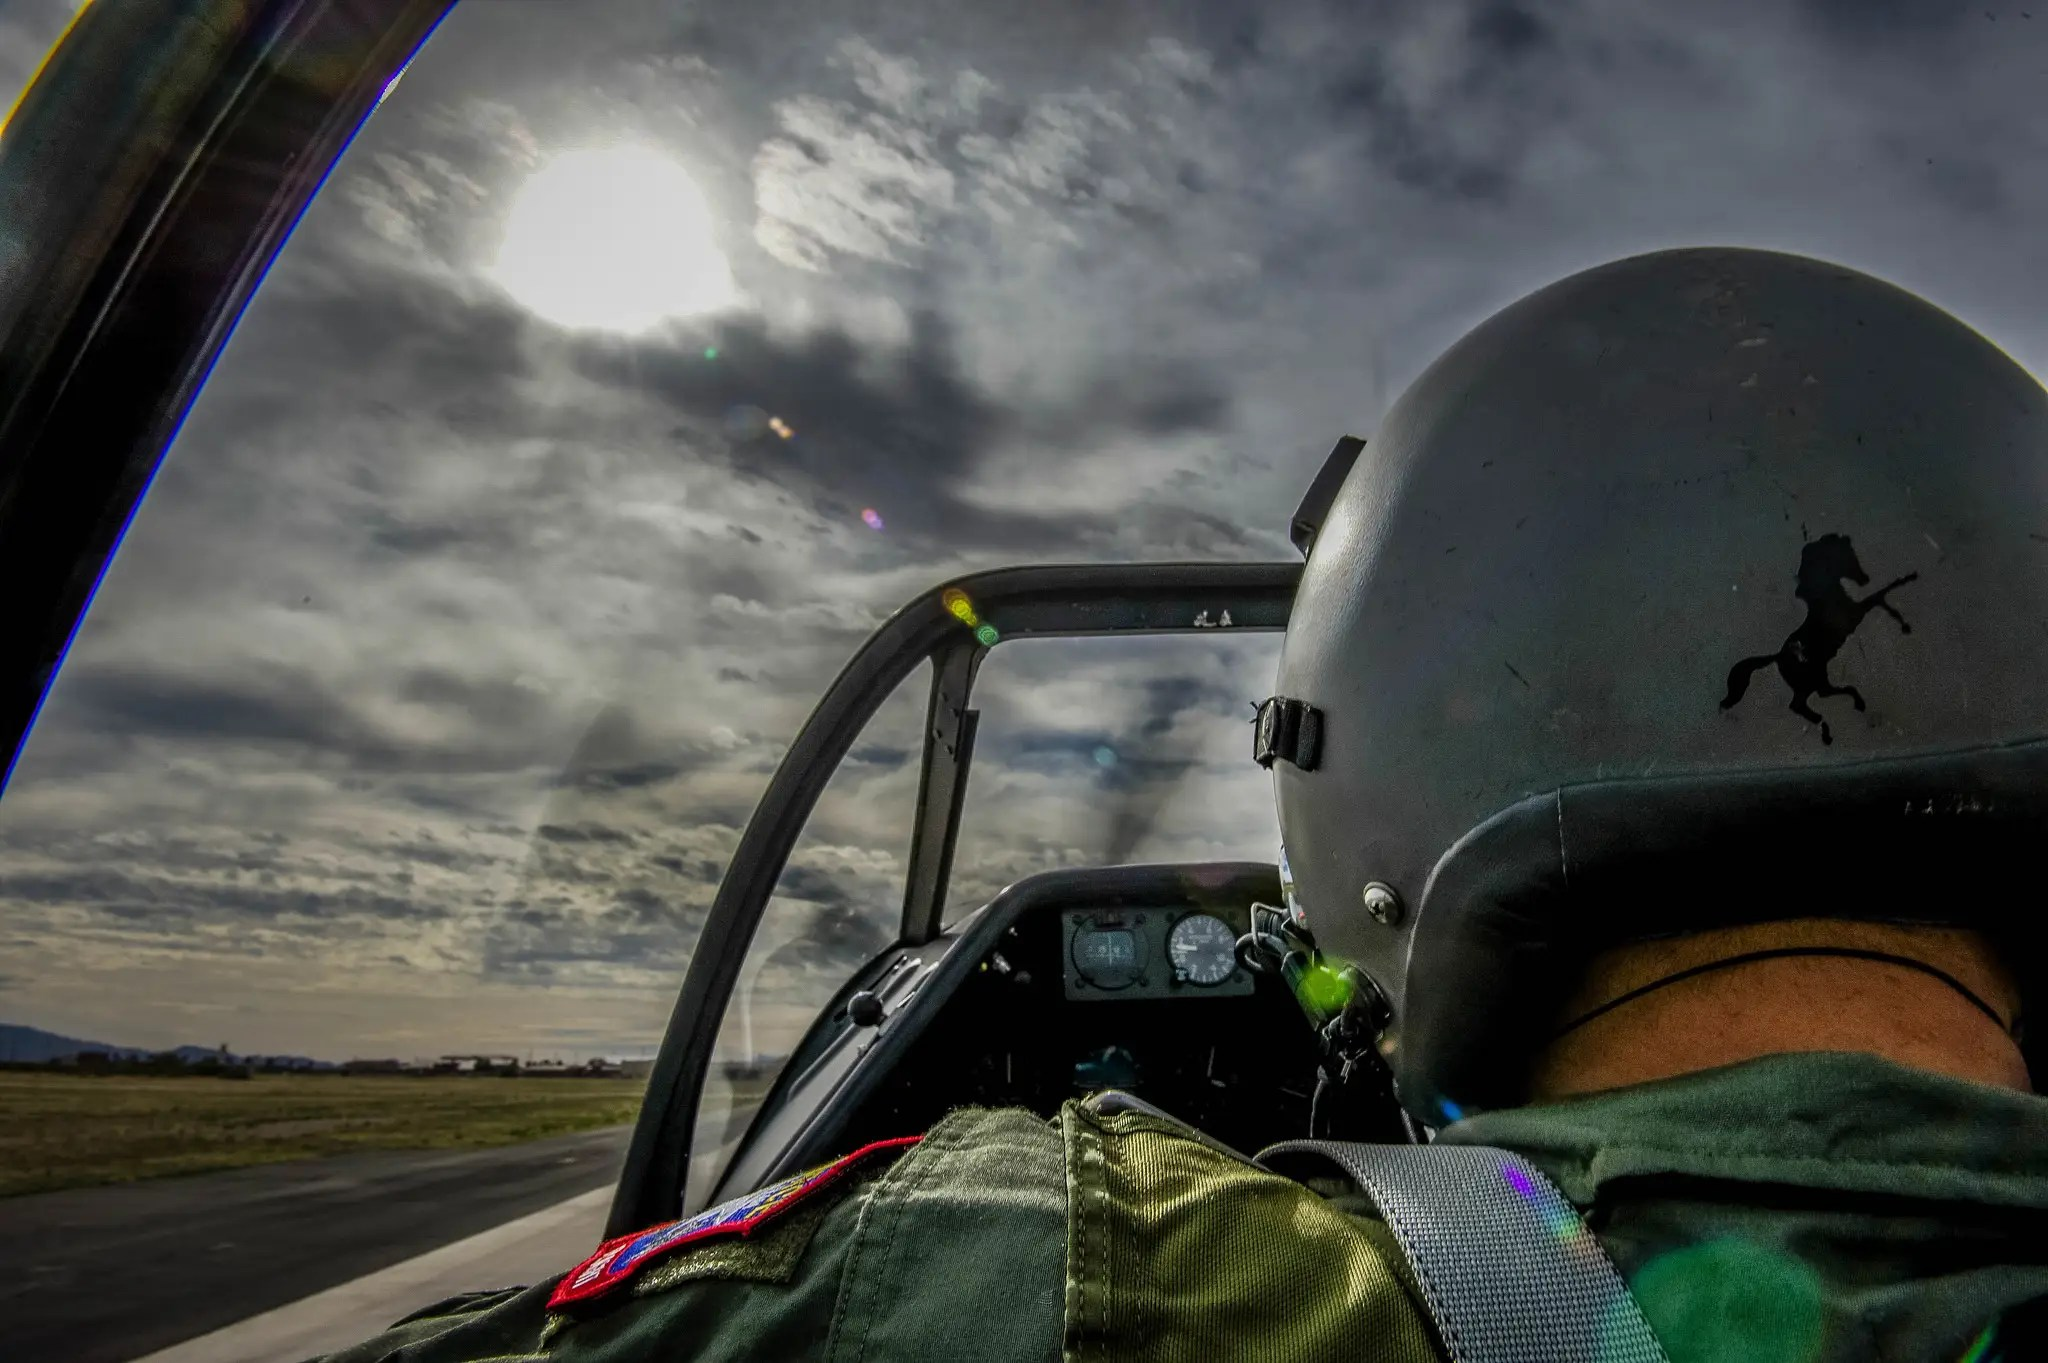 Here's a view from inside the Mustang's cockpit with the pilot who flew in the Heritage Flight.